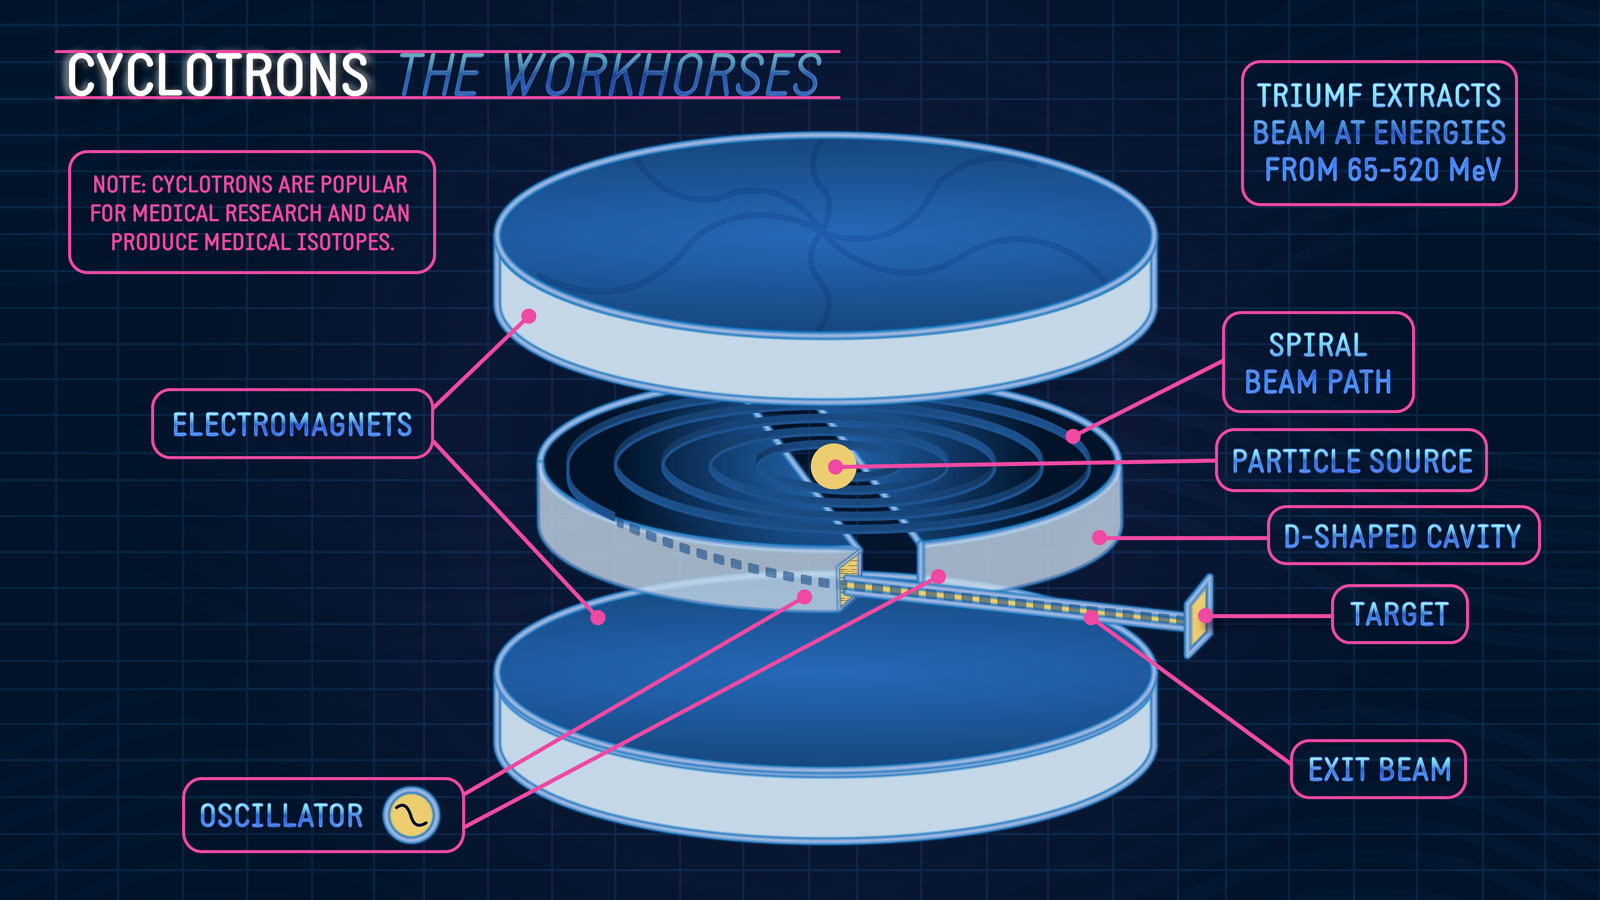 cyclotrons - the workhorses of particle physics